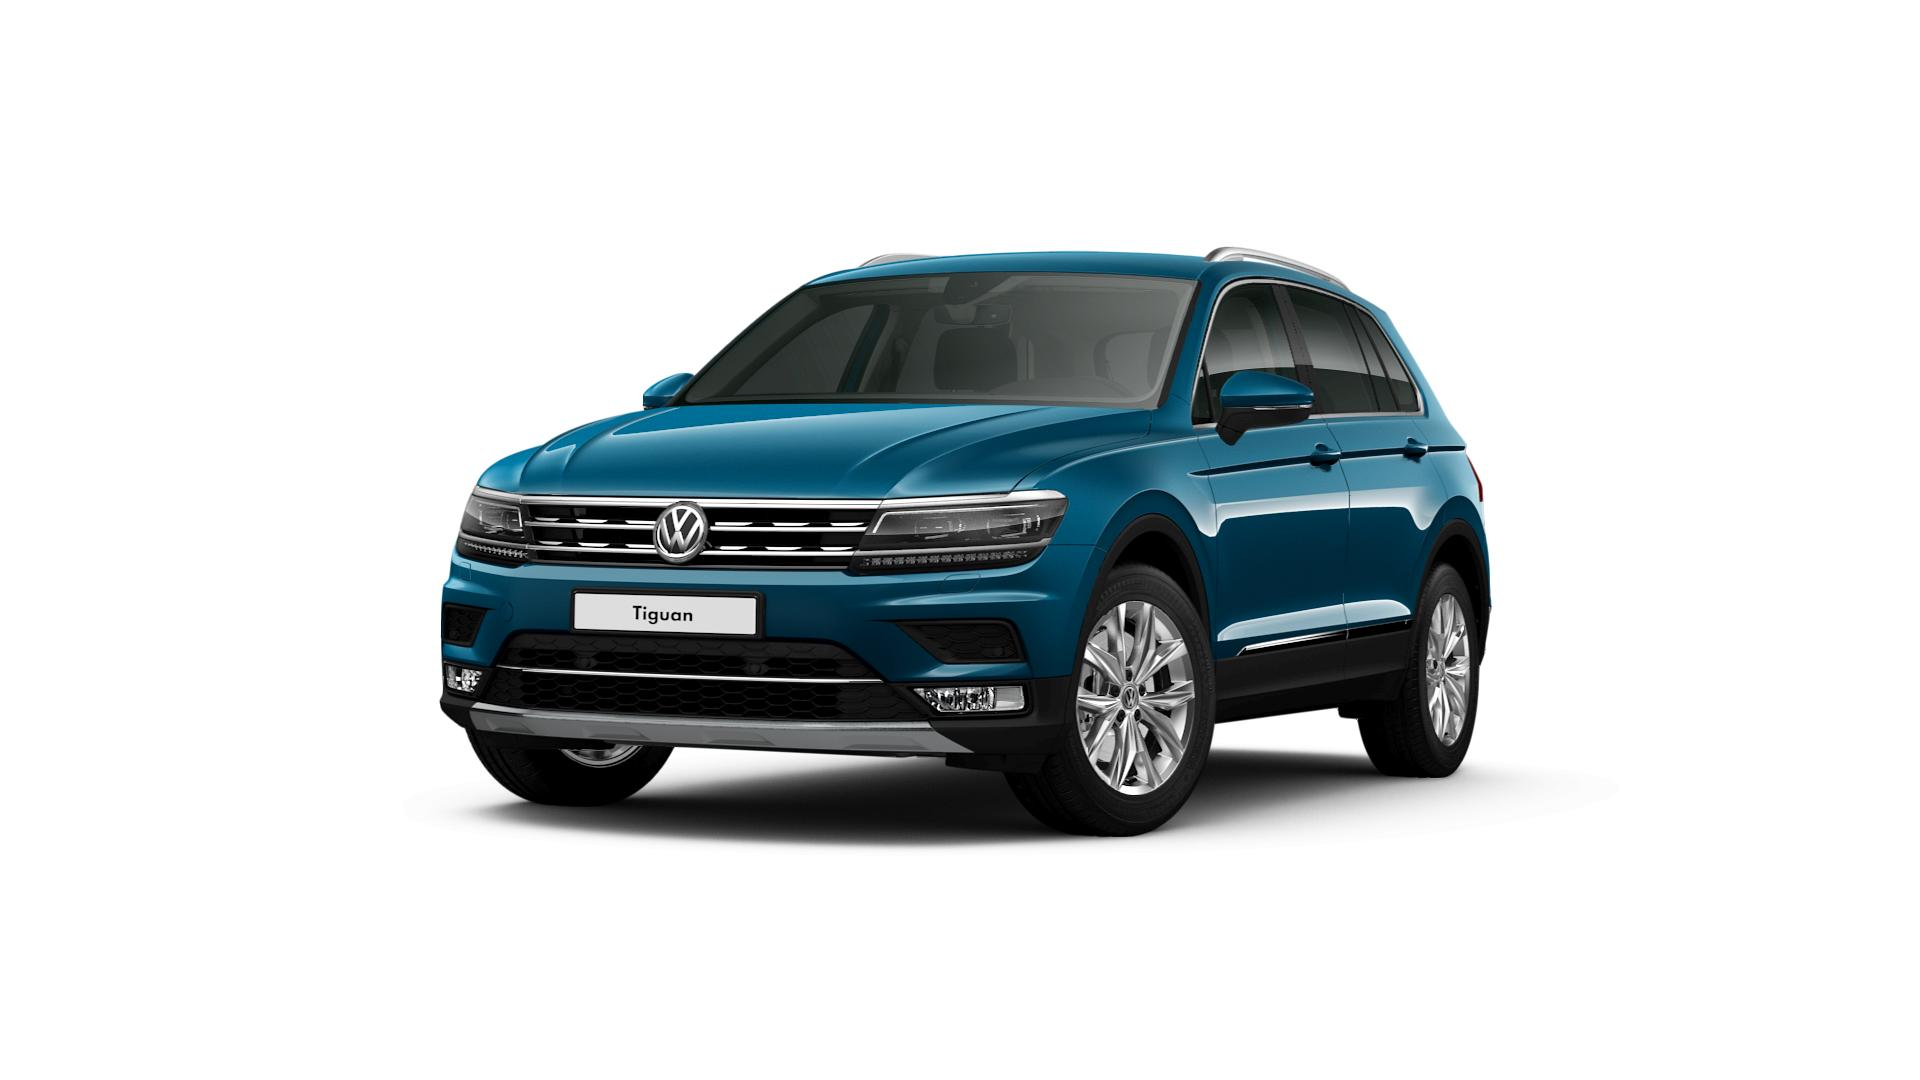 nouveau tiguan 2017 2017 volkswagen tiguan first look review volkswagen tiguan 2017 une. Black Bedroom Furniture Sets. Home Design Ideas